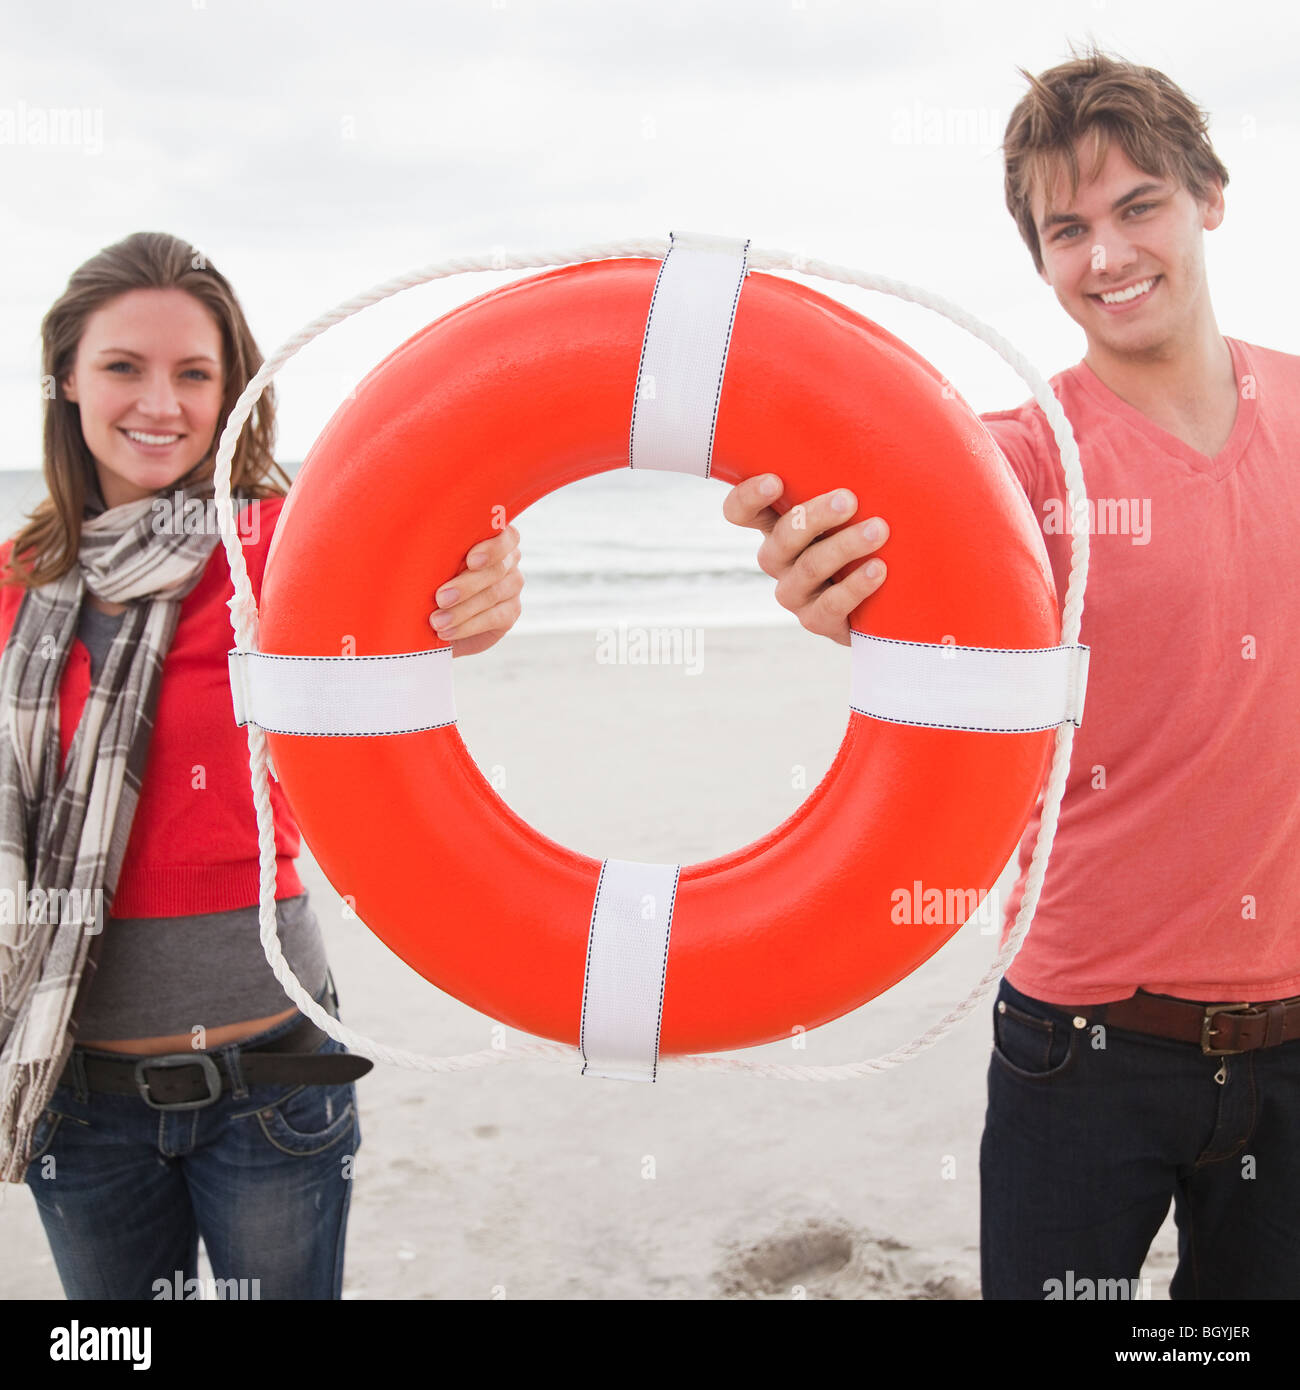 couple photos stock life holding ring alamy images rings image photo flotation bgyjer